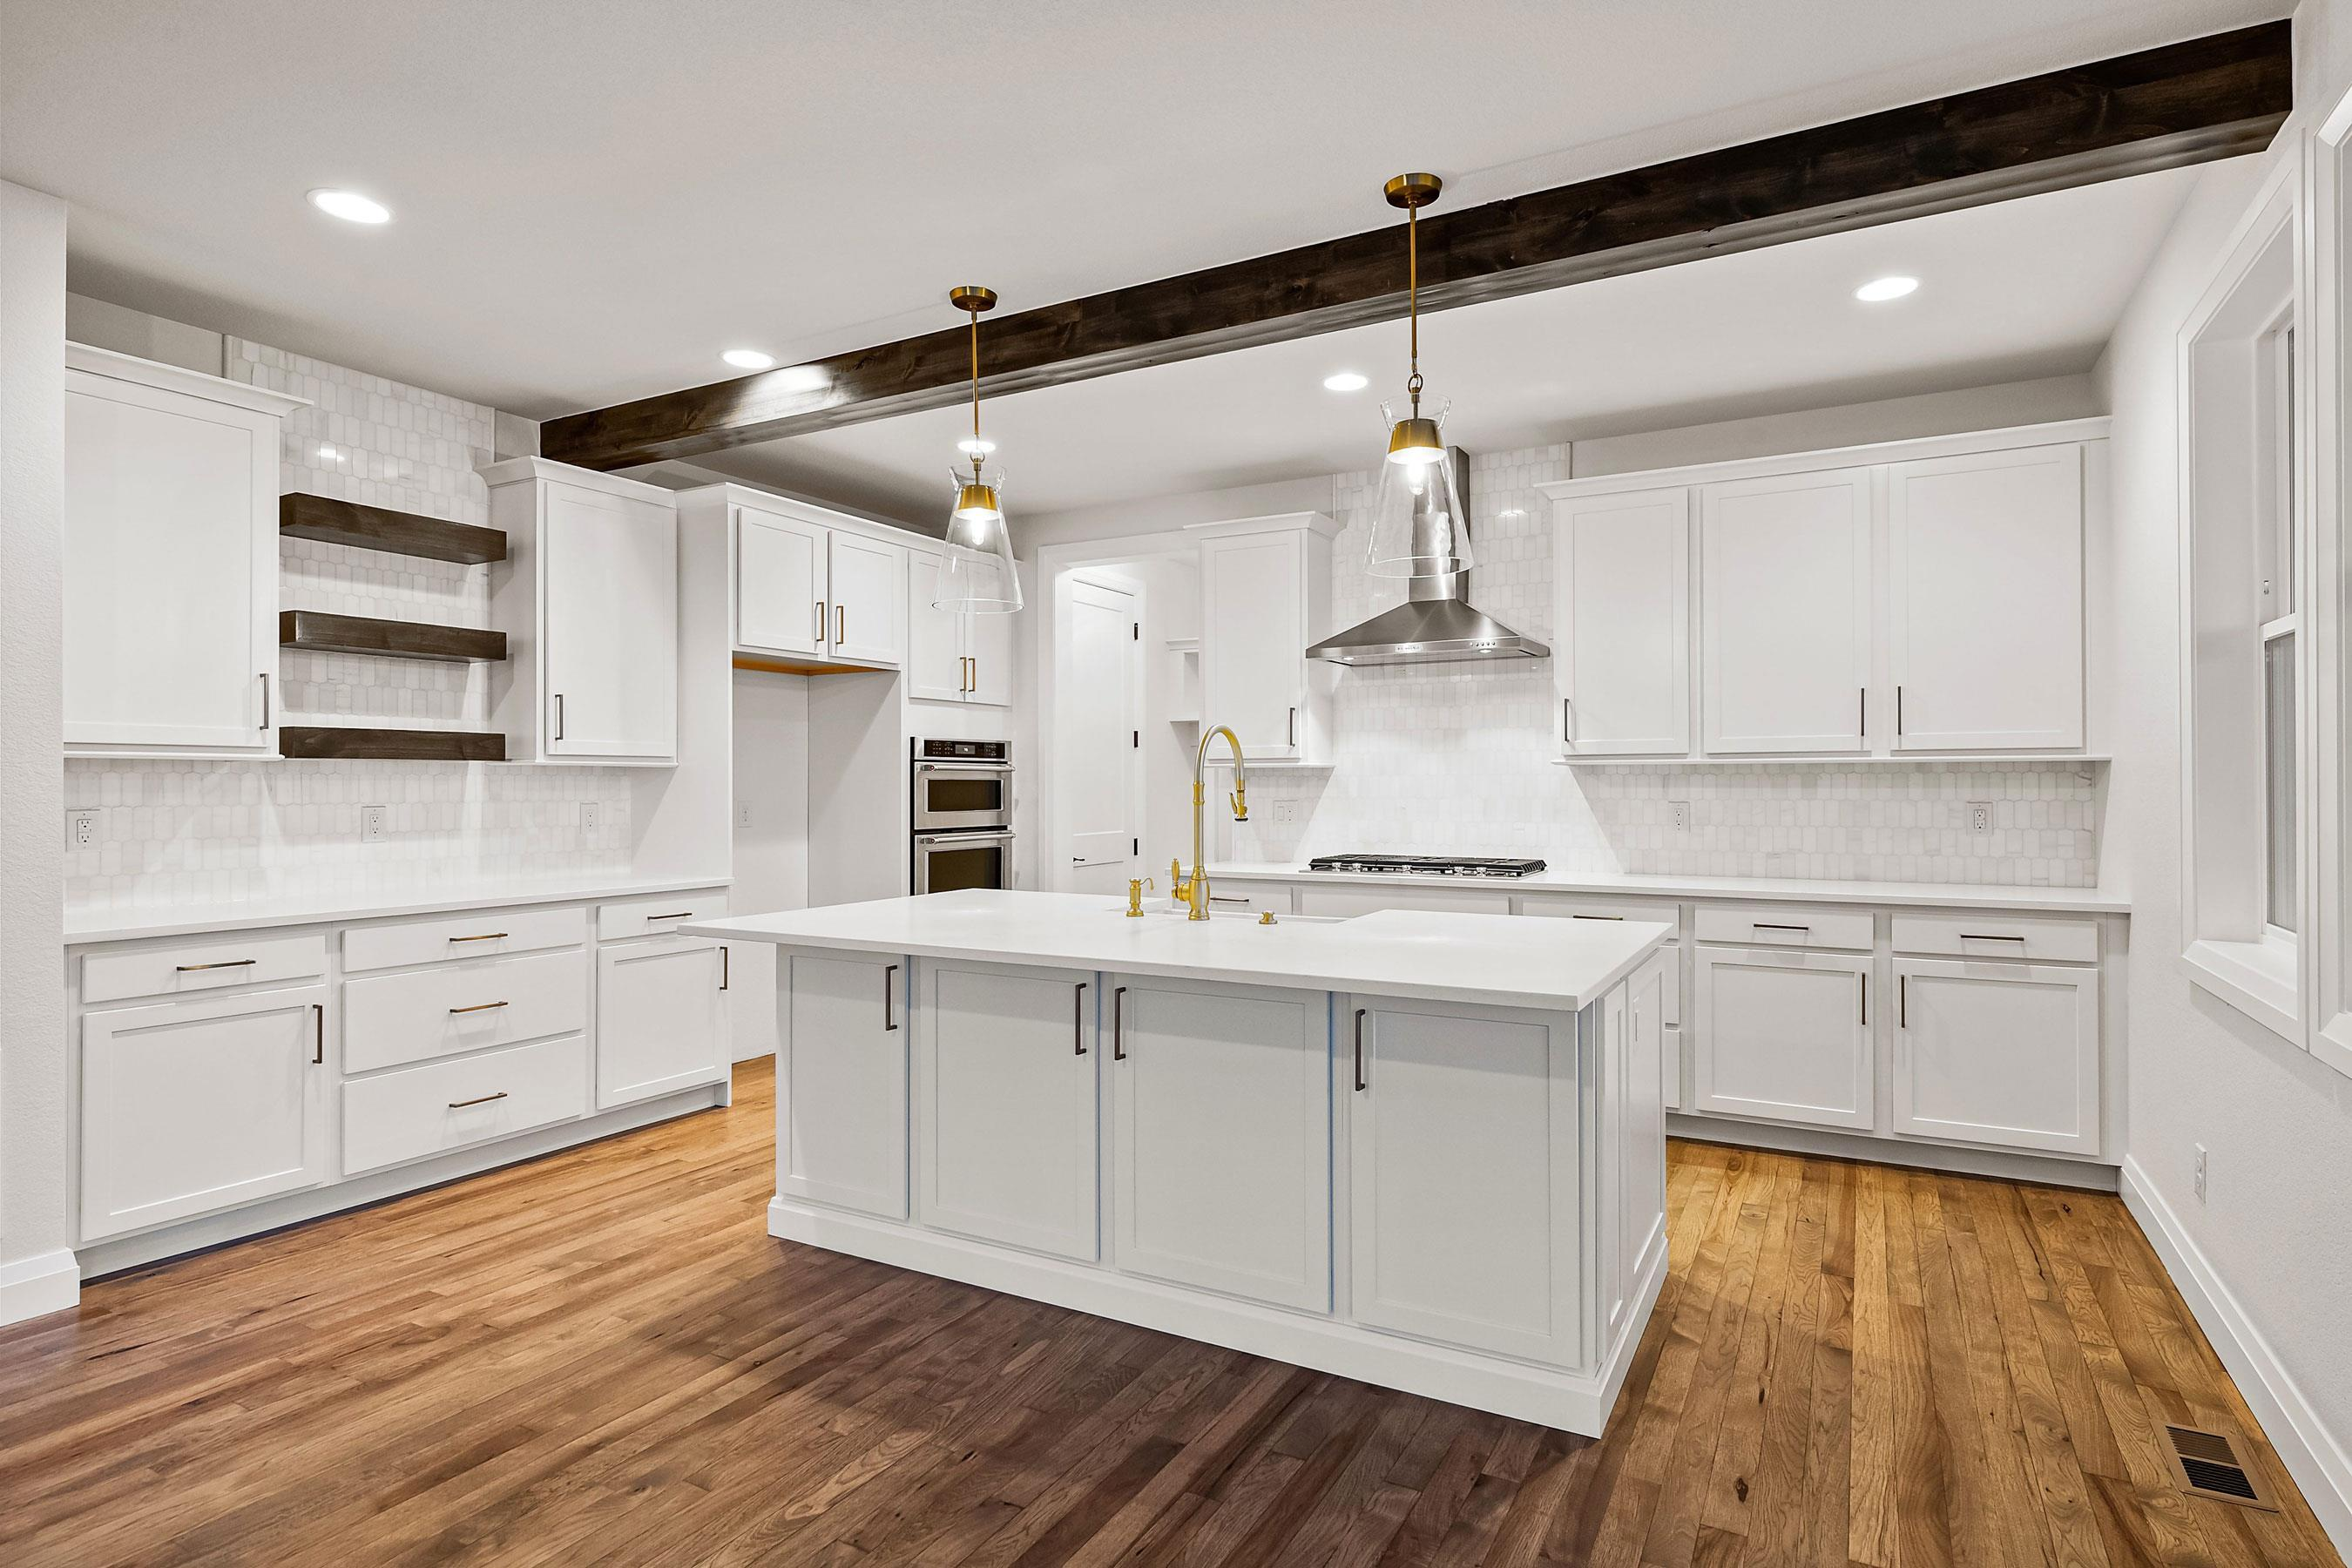 Kitchen featured in the Signature Series Plan Two By Celebrity Communities in Denver, CO